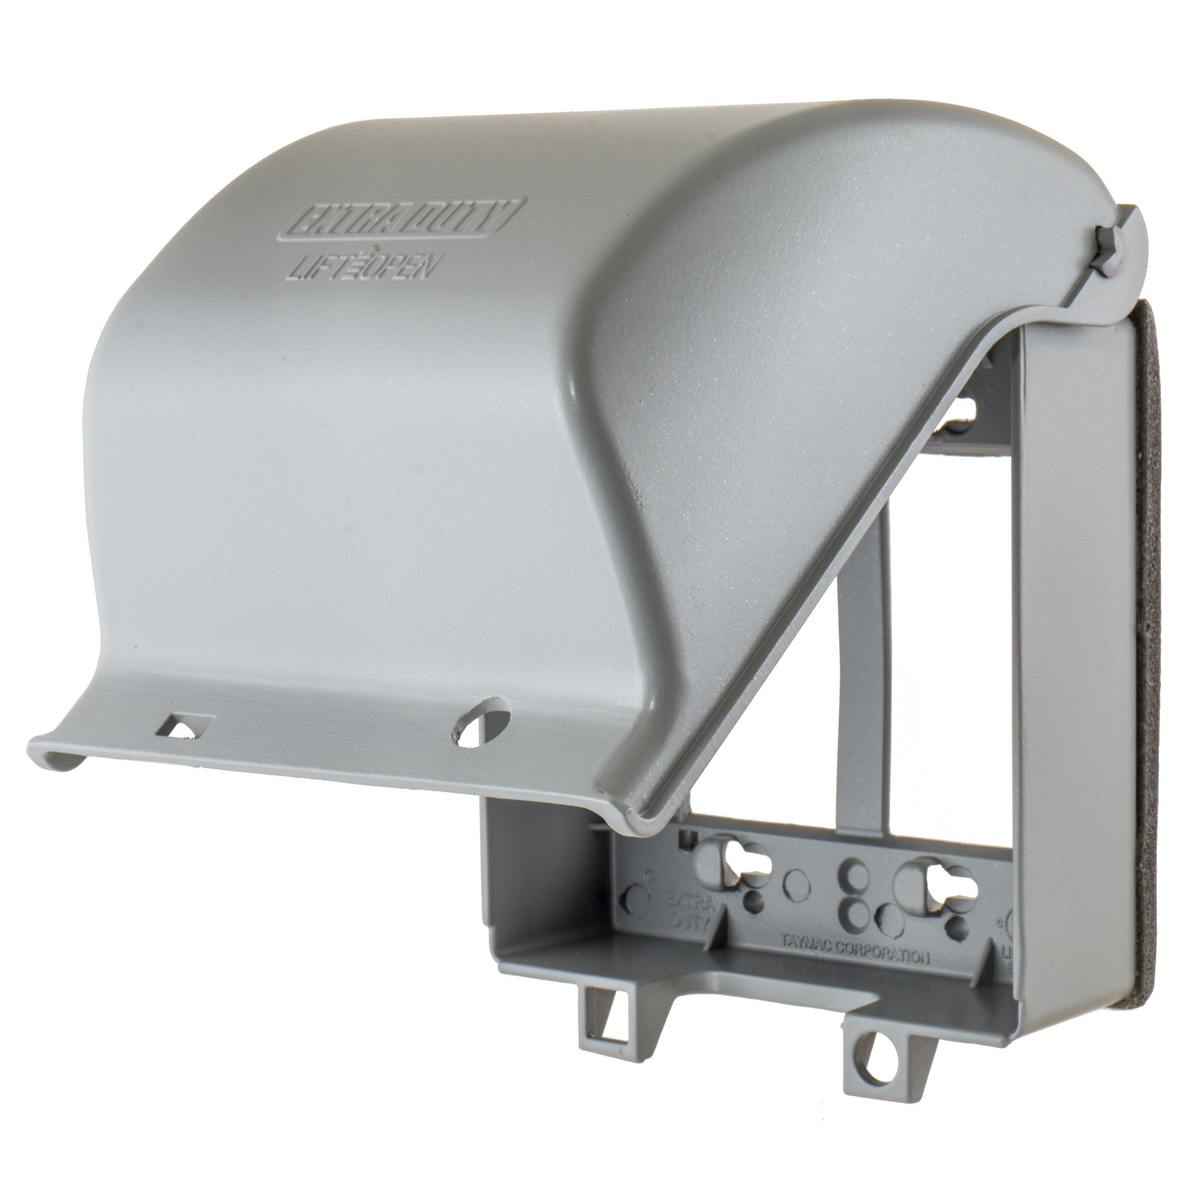 Boxes and Covers Electrical box covers   Standard Electric Supply